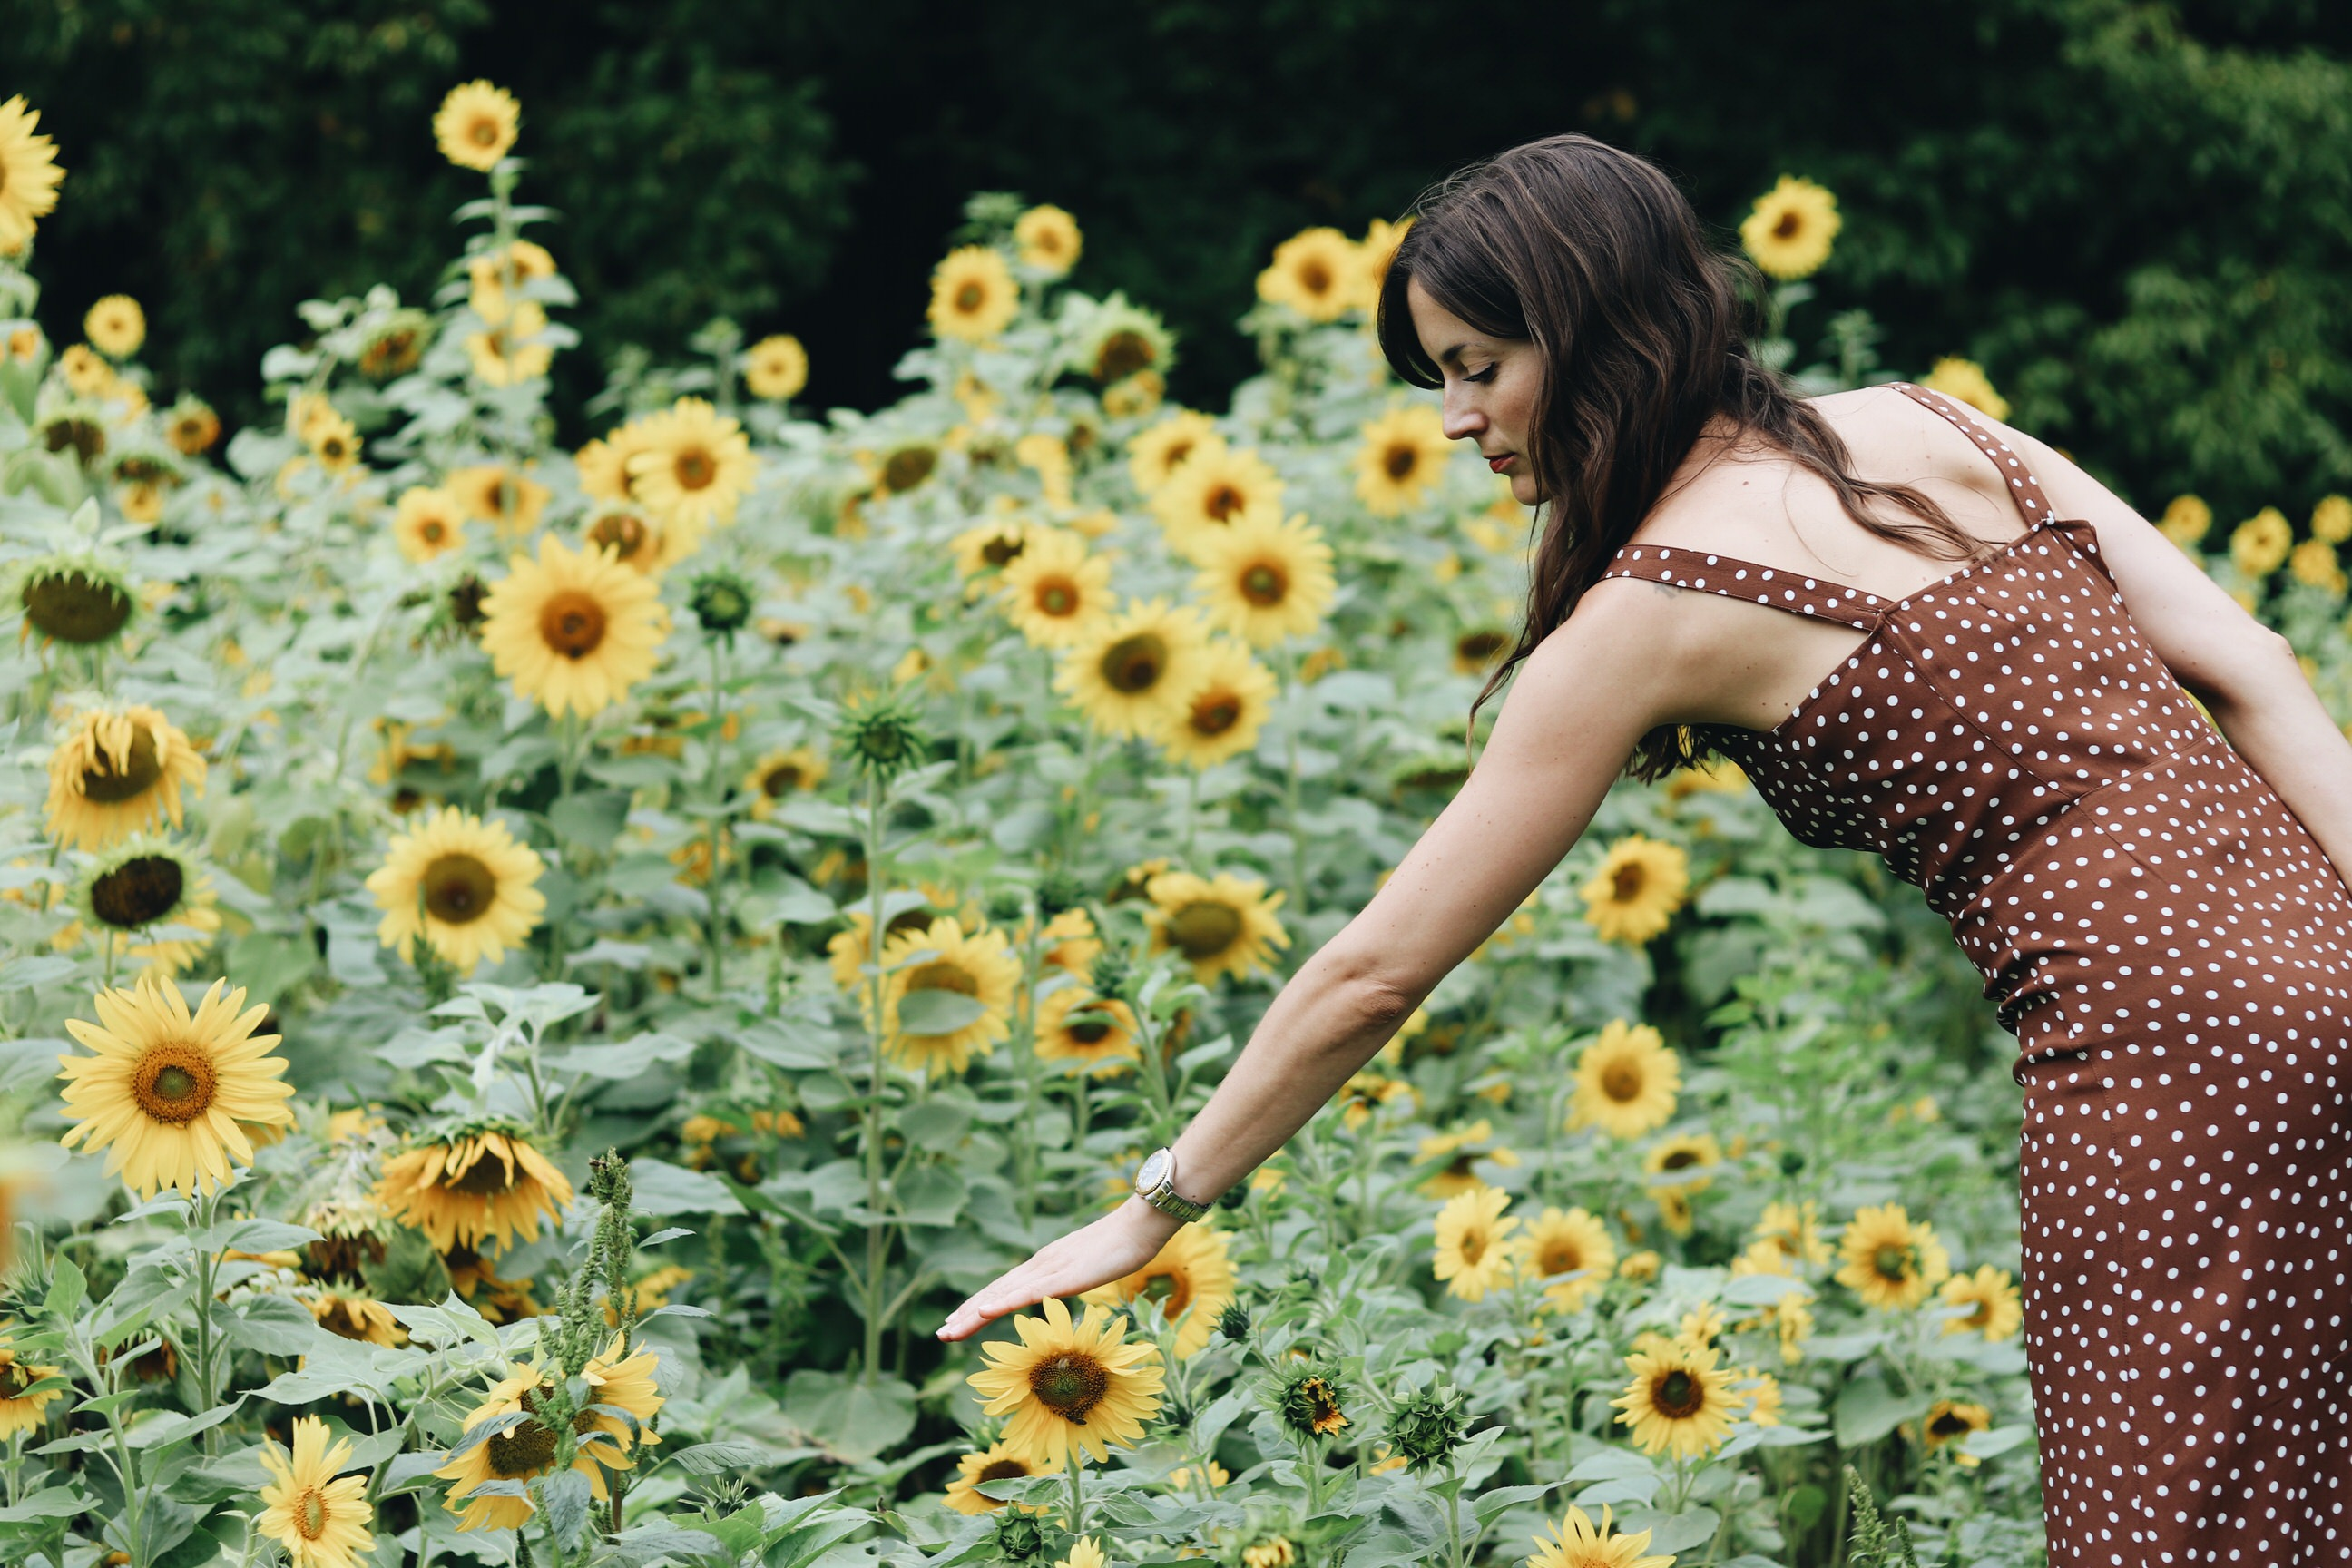 Modeblog Outfit Sommer French Chic Jeanne Damas Mode Blog Polka Dots braunes Kleid